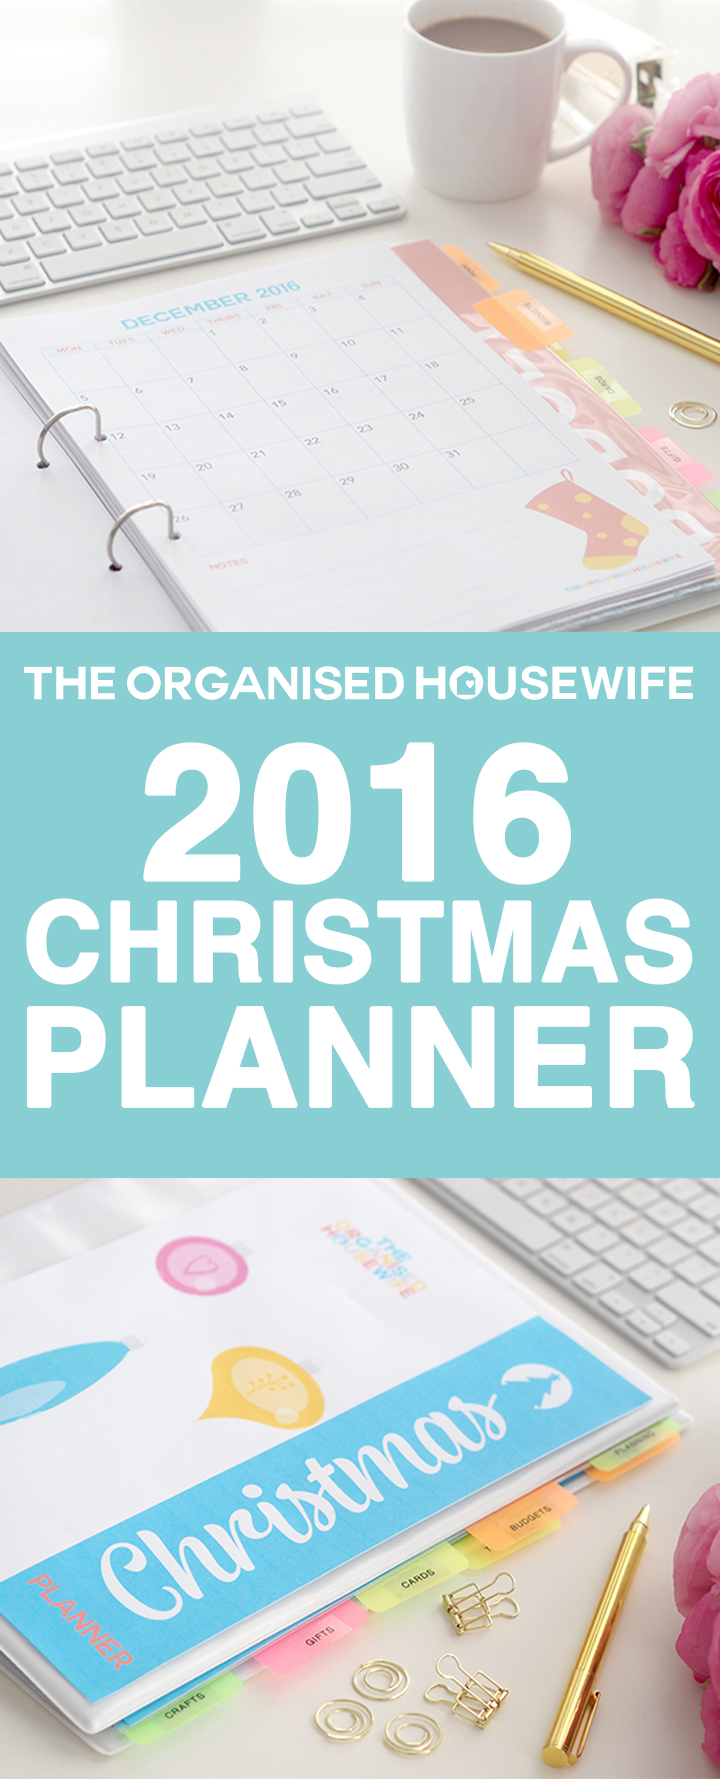 The Organised Housewife 2016 Christmas Planner has a whole new look! With 70+ pages to keep all your checklists, planners, budget, recipes ideas and more together in one folder. No more losing notes scribbled on the back of envelopes, receipts somewhere on your office desk, this planner will help you cut through the clutter. This planner is an instant download so you can start planning and organising everything Christmas today.